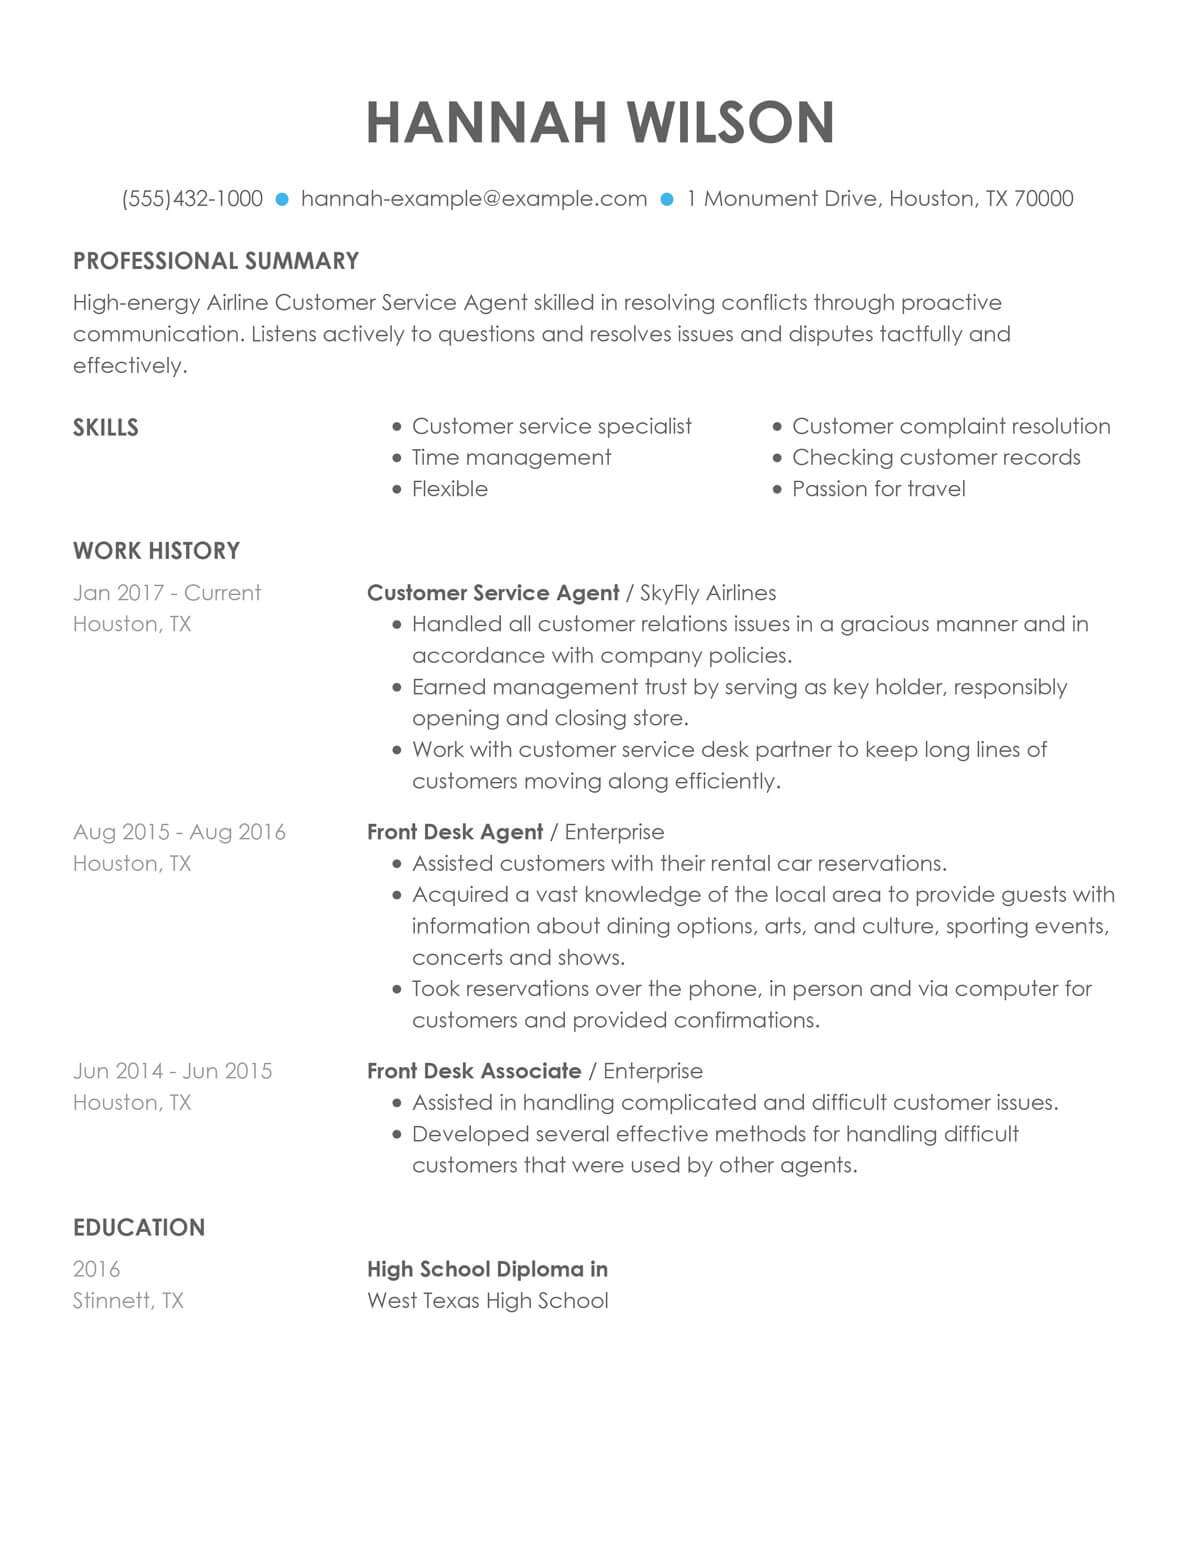 customize our customer representative resume example examples service retail airline Resume Resume Examples Customer Service Retail